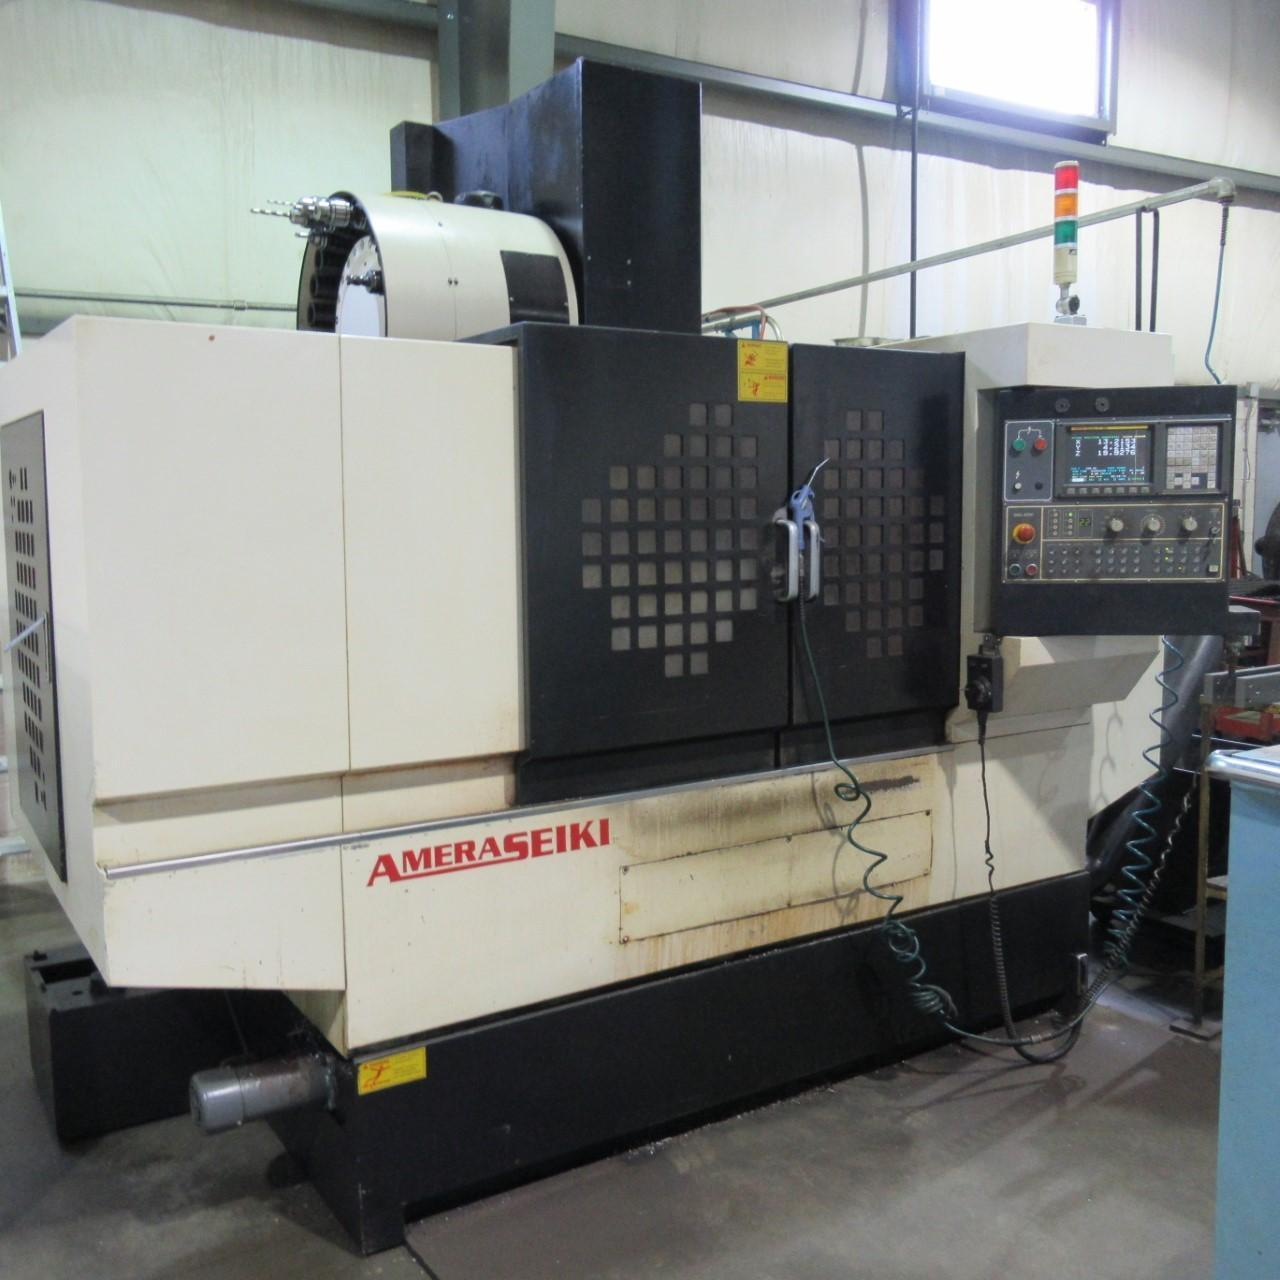 Amera Seiki A3 Vertical Machining Center Year: 2004